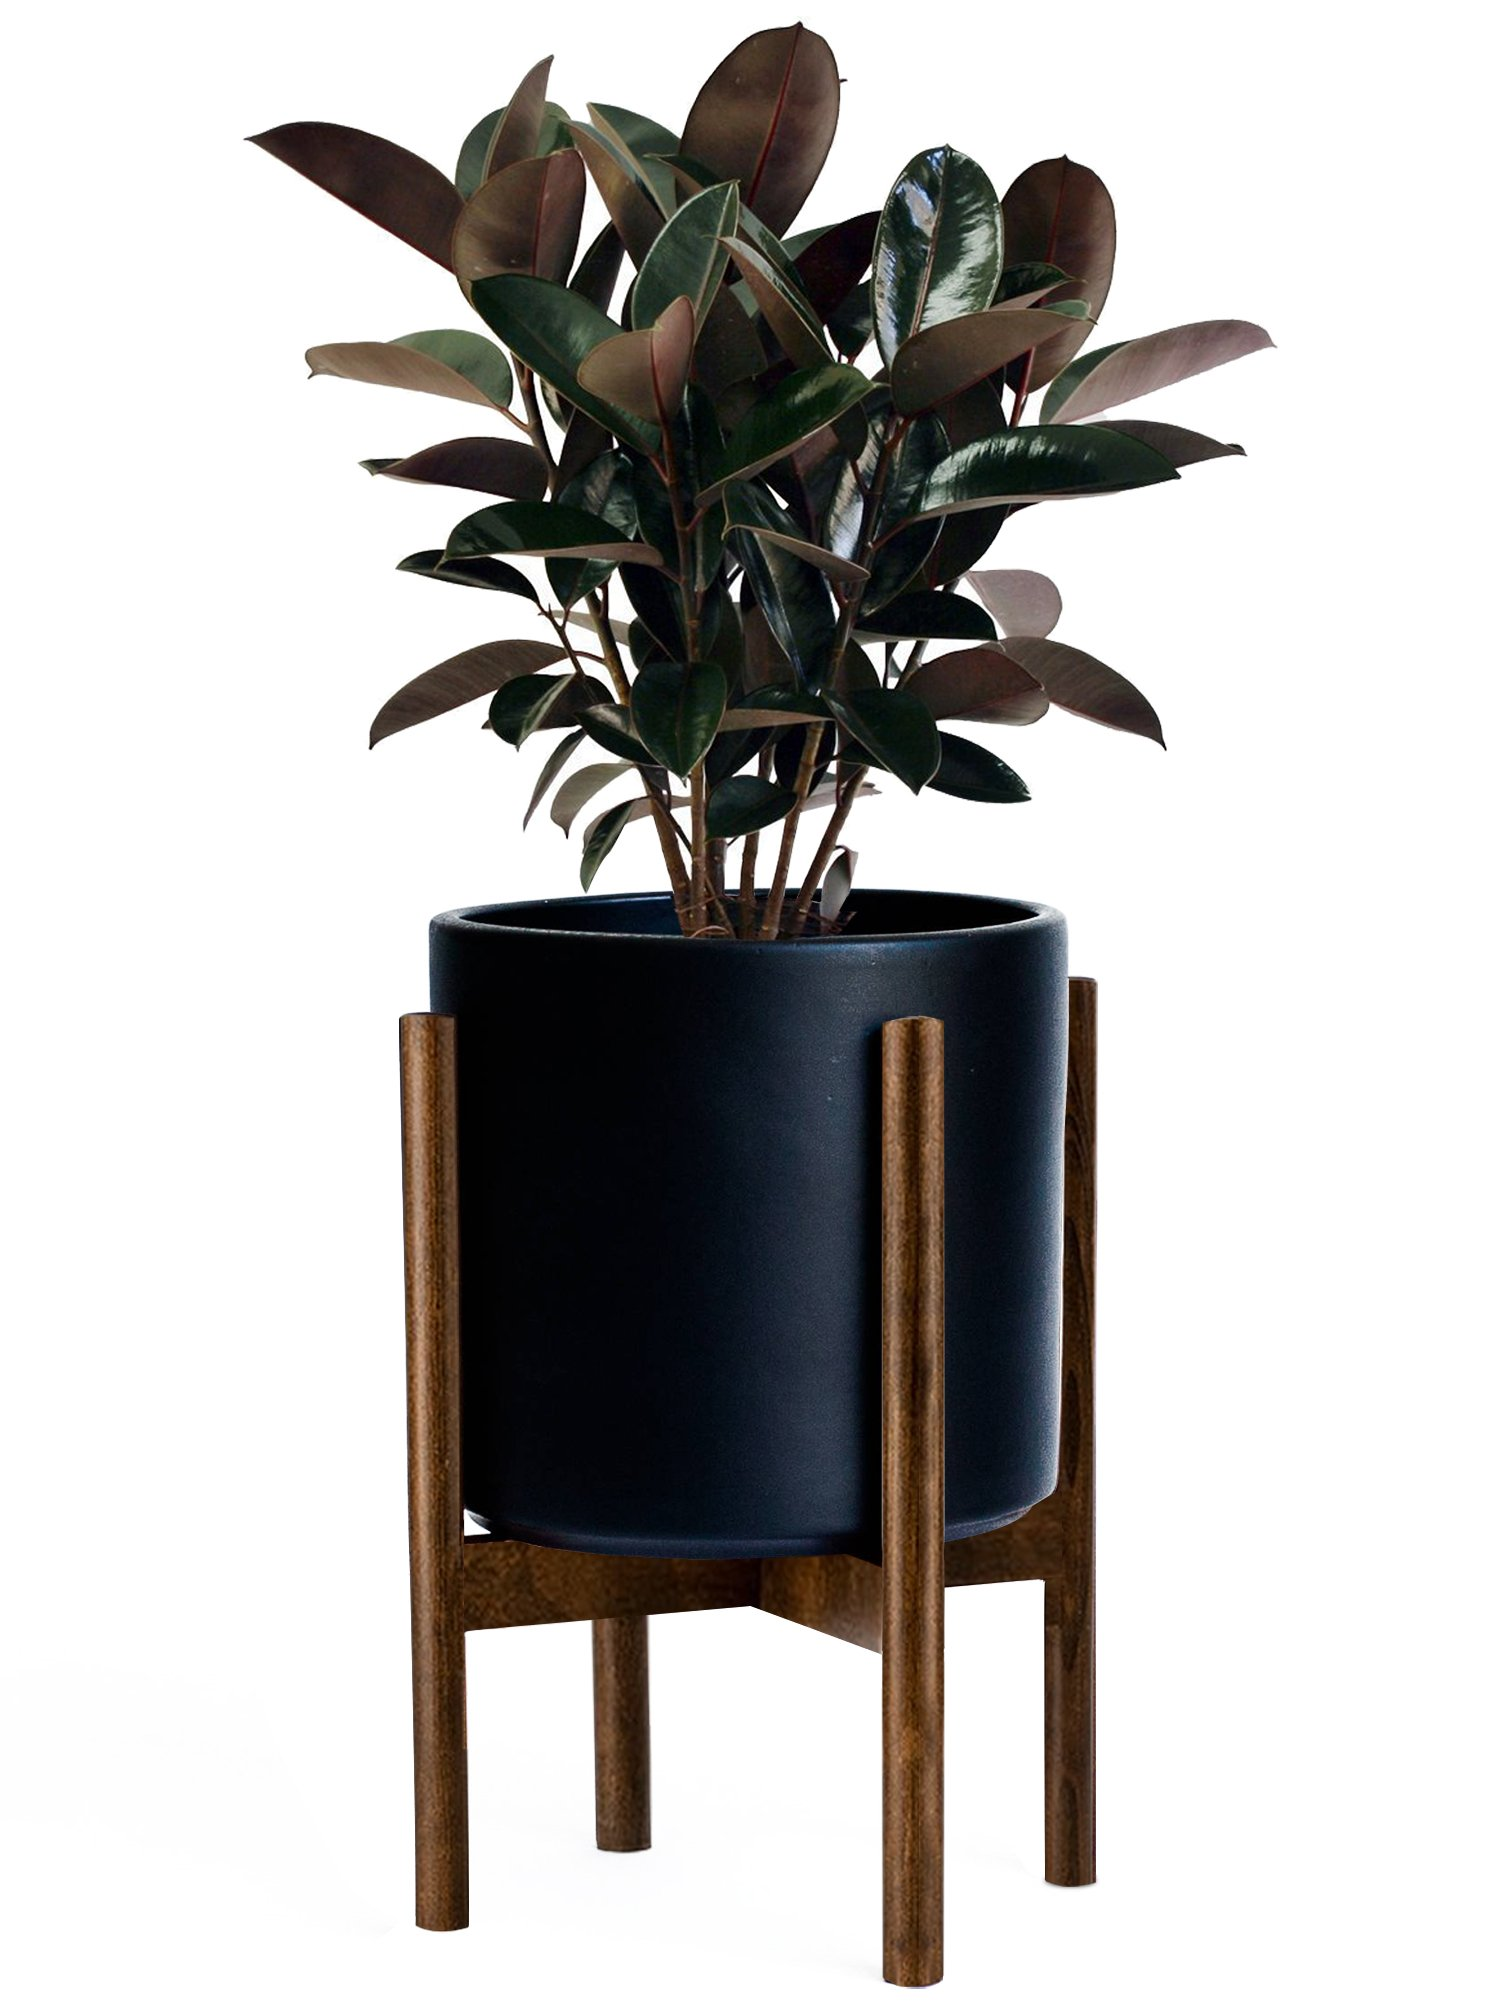 Timeyard Mid Century Plant Stand - Best Fits 10'' Flower Pot - Wood Indoor Planter Holder - Modern Home Decor (Planter Not Included)